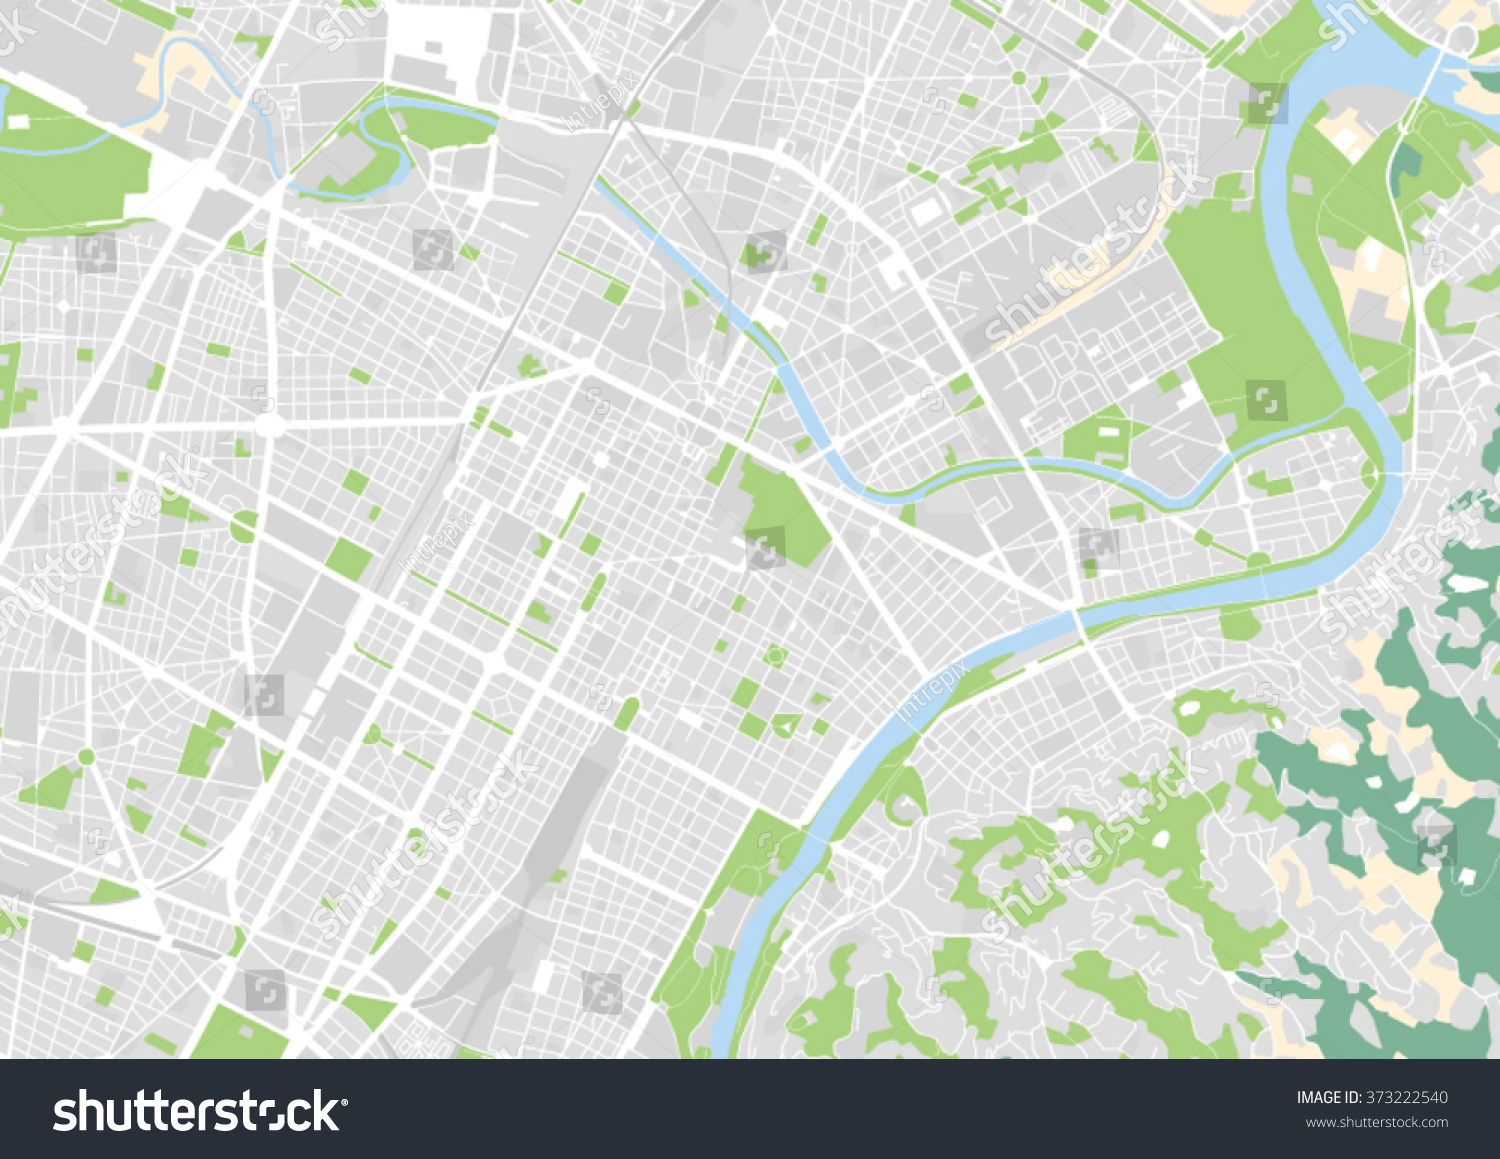 vector city map of Turin Italy